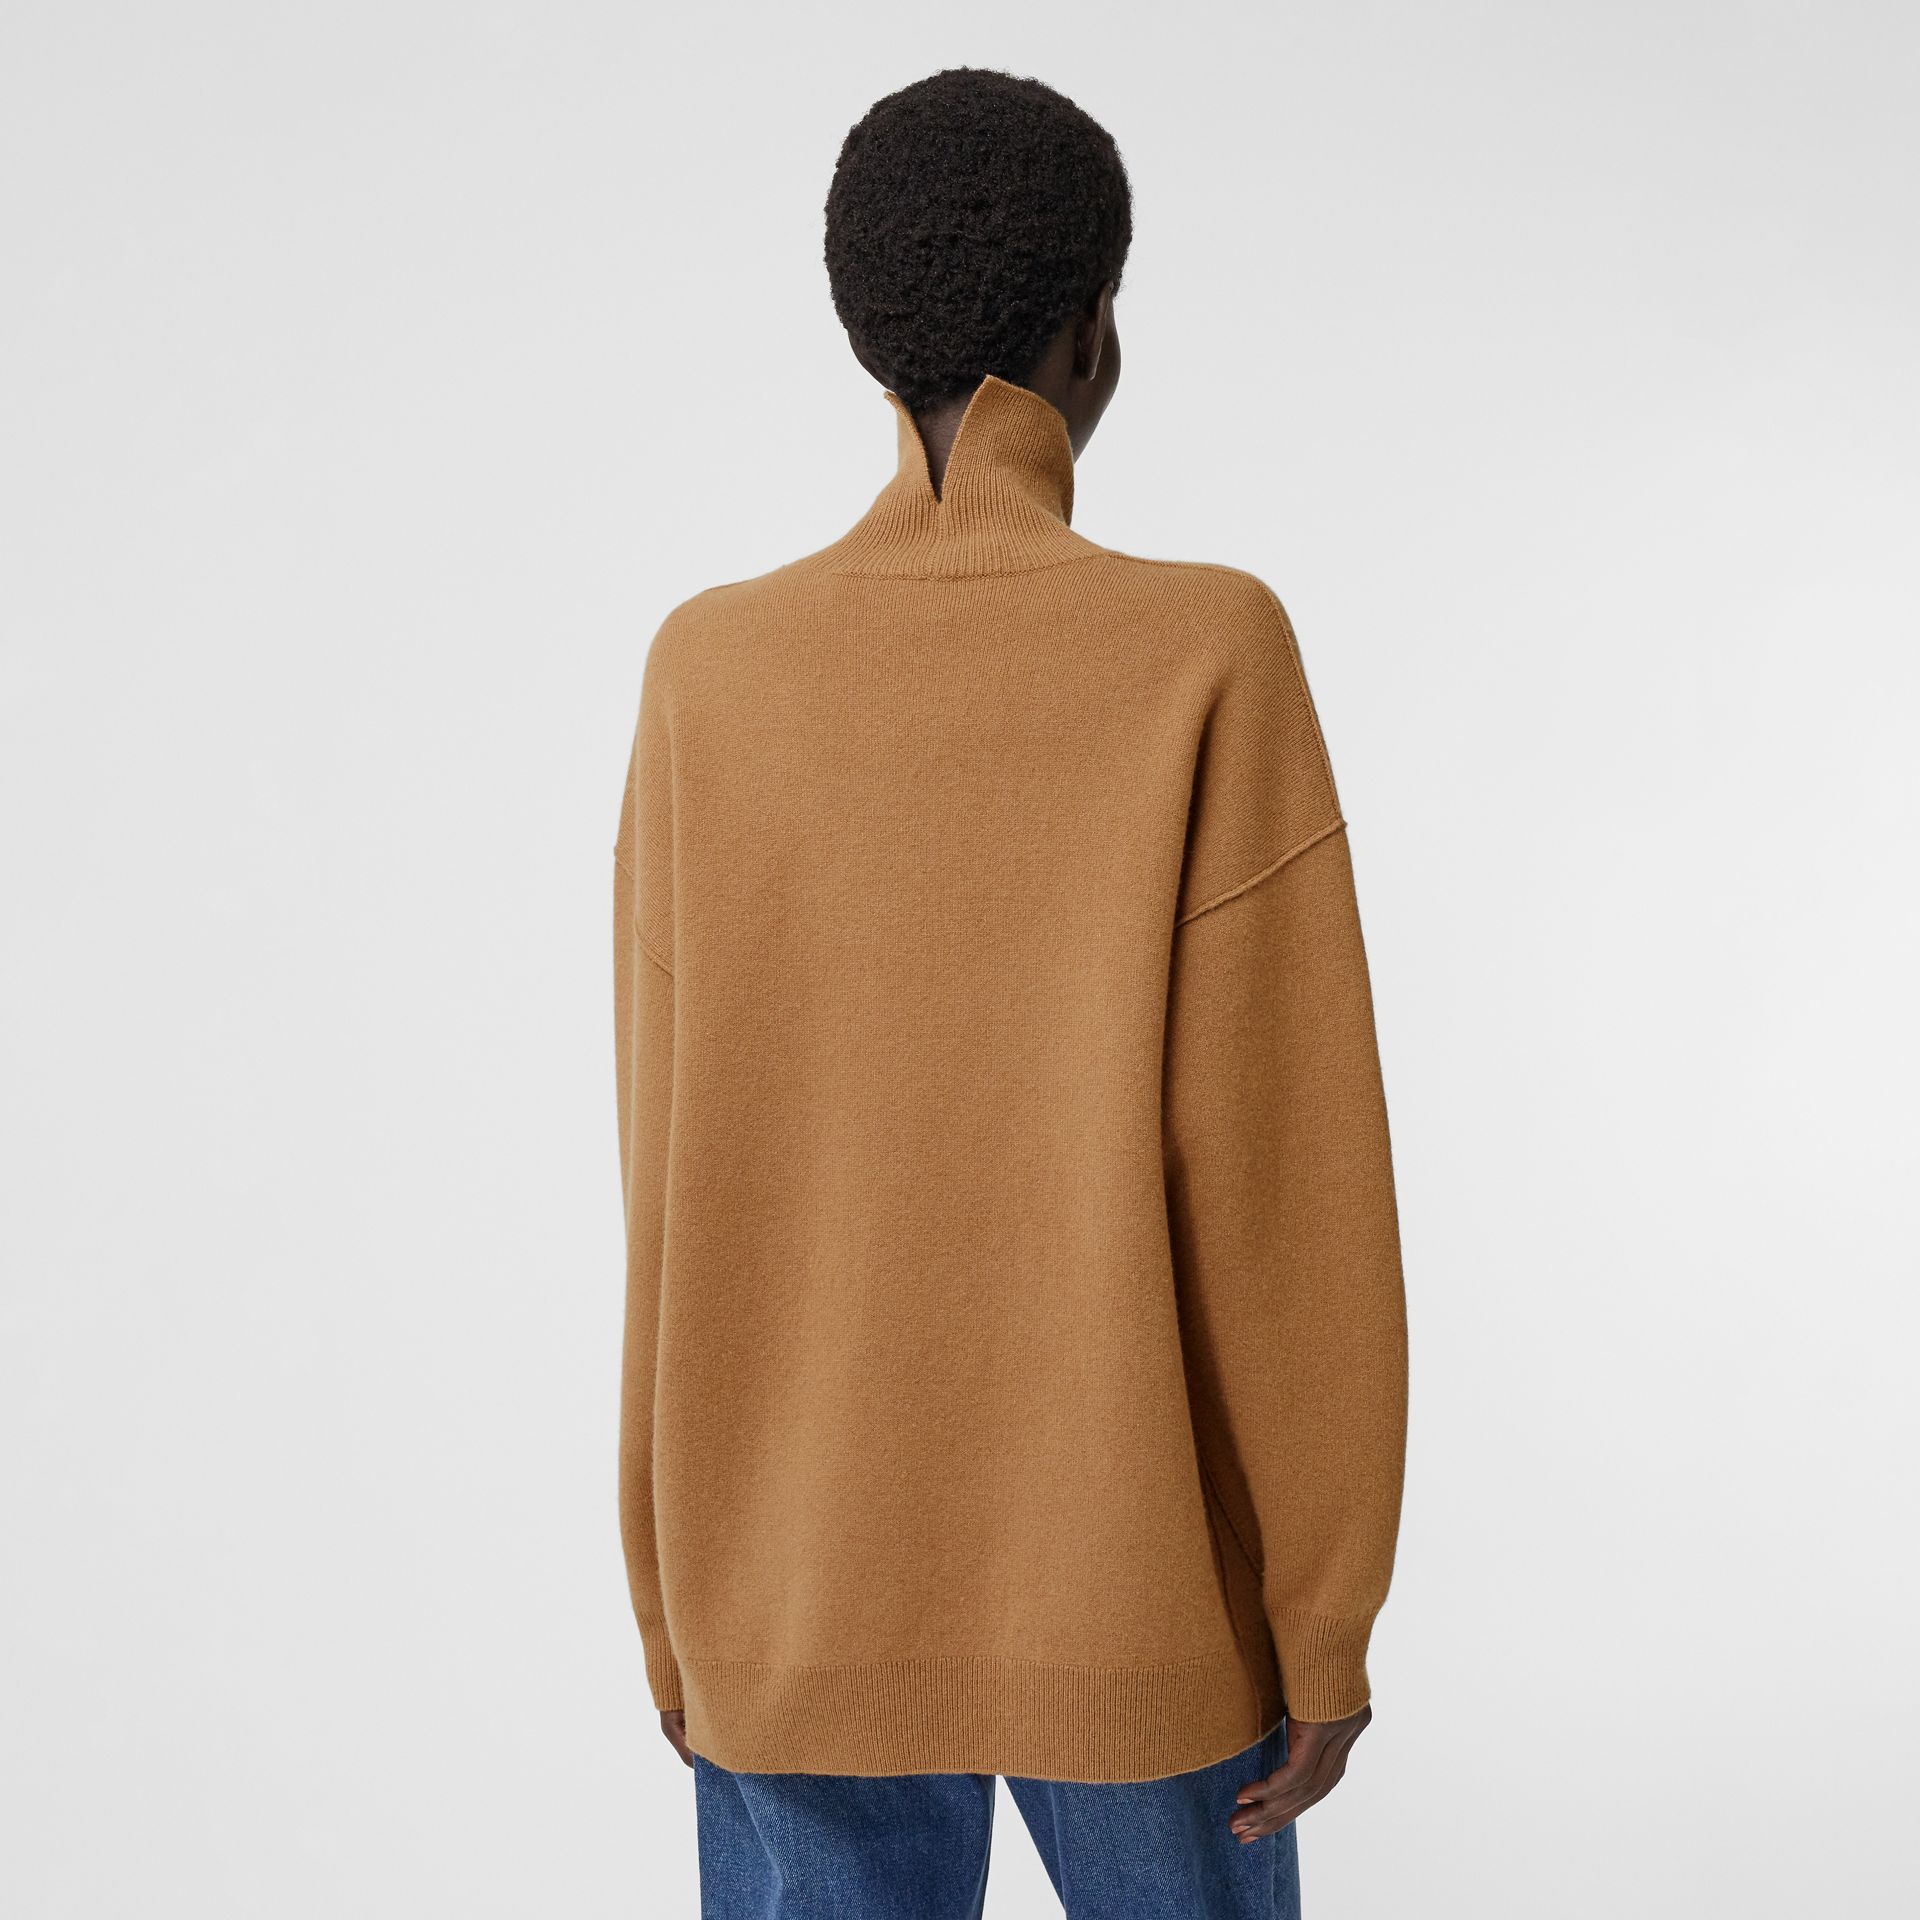 Monogram Motif Cashmere Blend Funnel Neck Sweater in Camel - Women | Burberry - gallery image 1